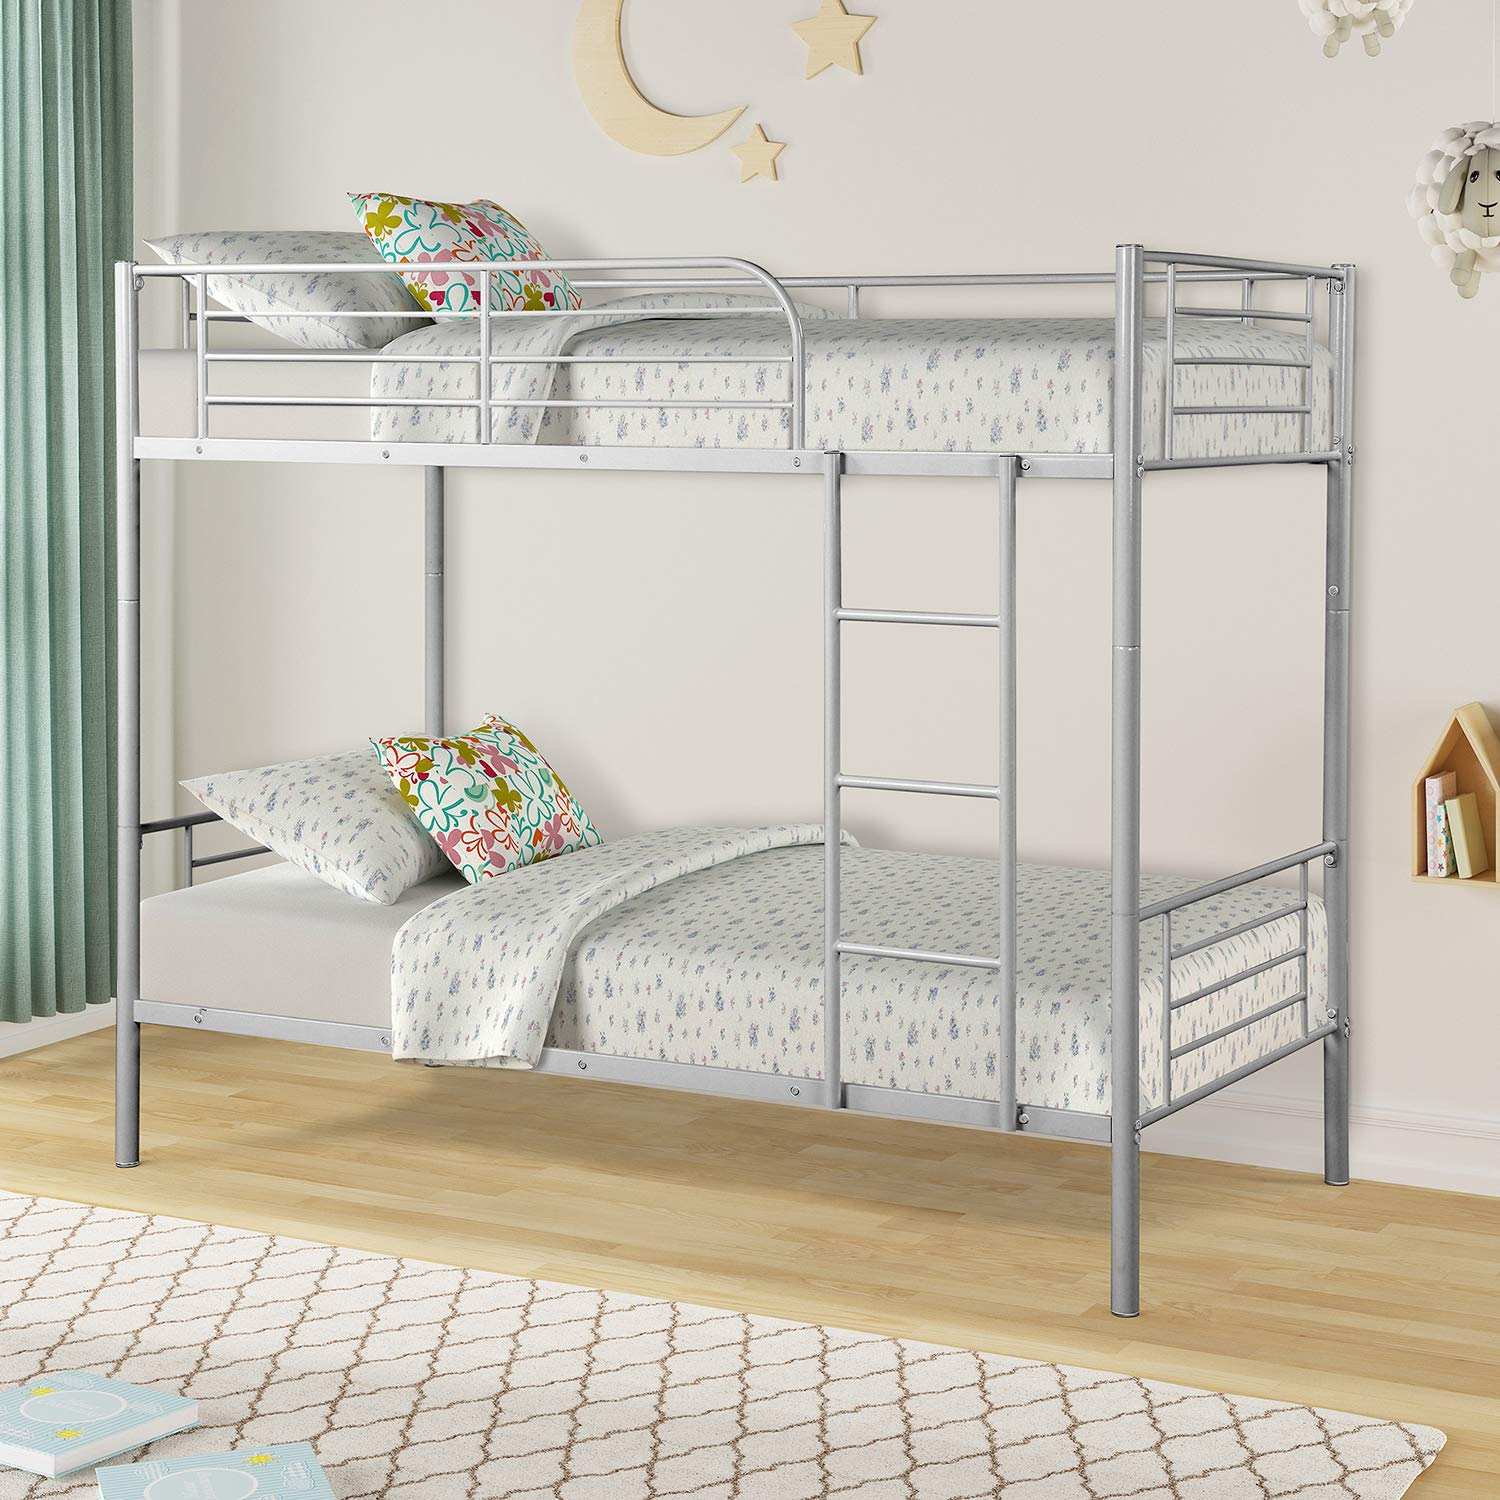 Twin Over Twin Metal Bunk Beds, Rockjame Space Saving Design Sleeping Bedroom Twin Bed with Ladder and Safety Rail for Boys, Girls, Kids, Young Teens and Adults (Sliver)